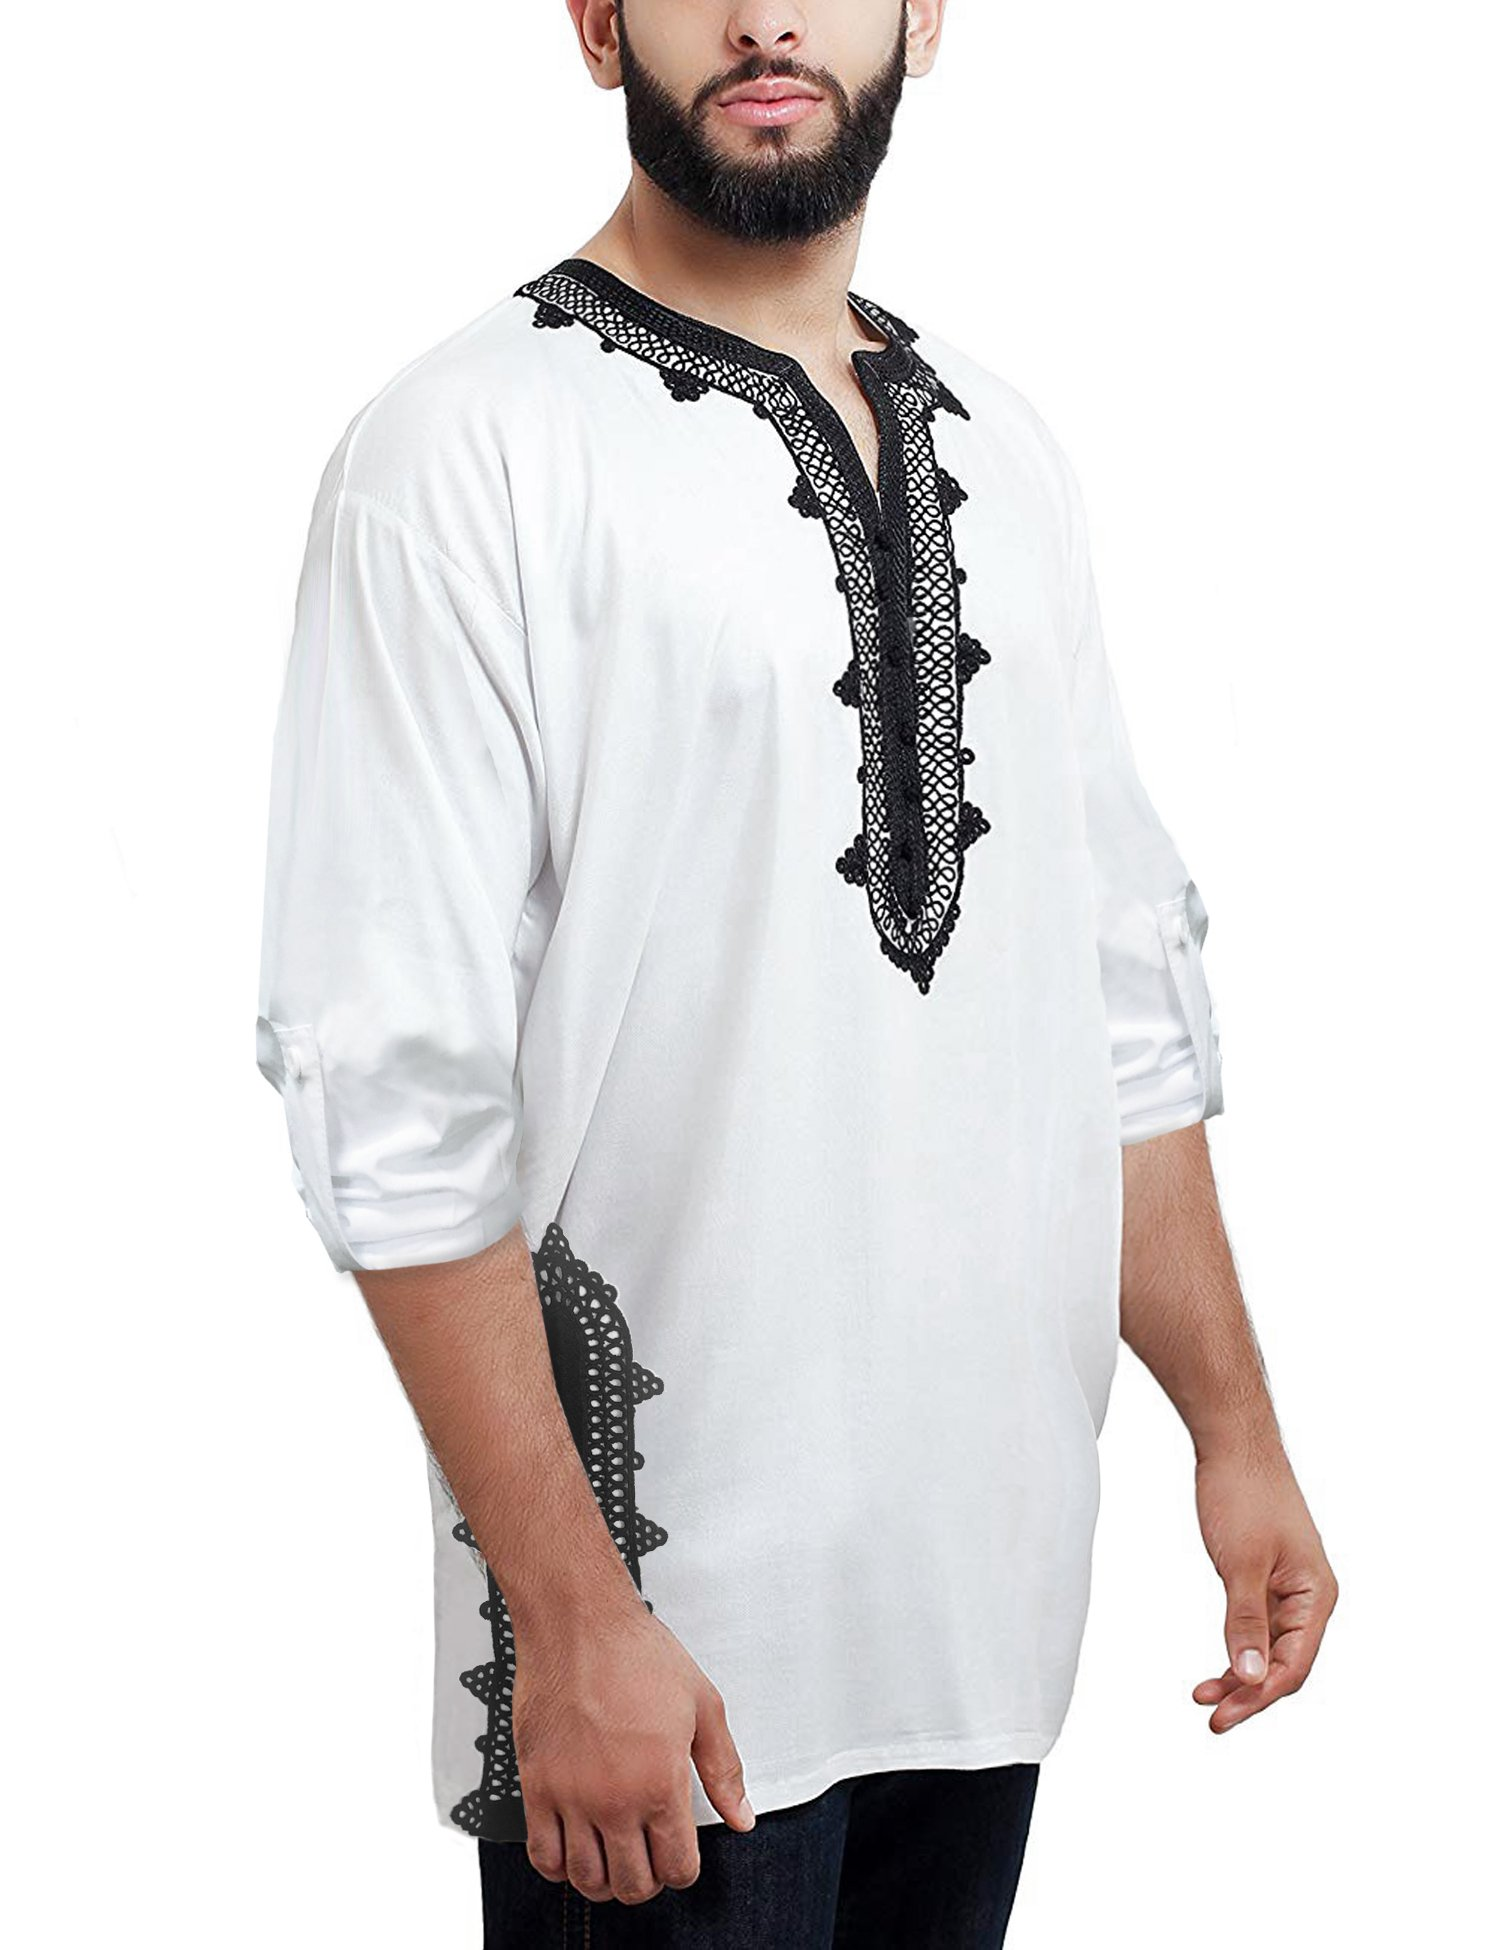 Daupanzees Men T-Shirt Tunic Caftan Morocco Breathable Fiber Cotton Handmade Moroccan Unisex Embroidery Shirt African Print Tops Ethnic Tee (White XL)